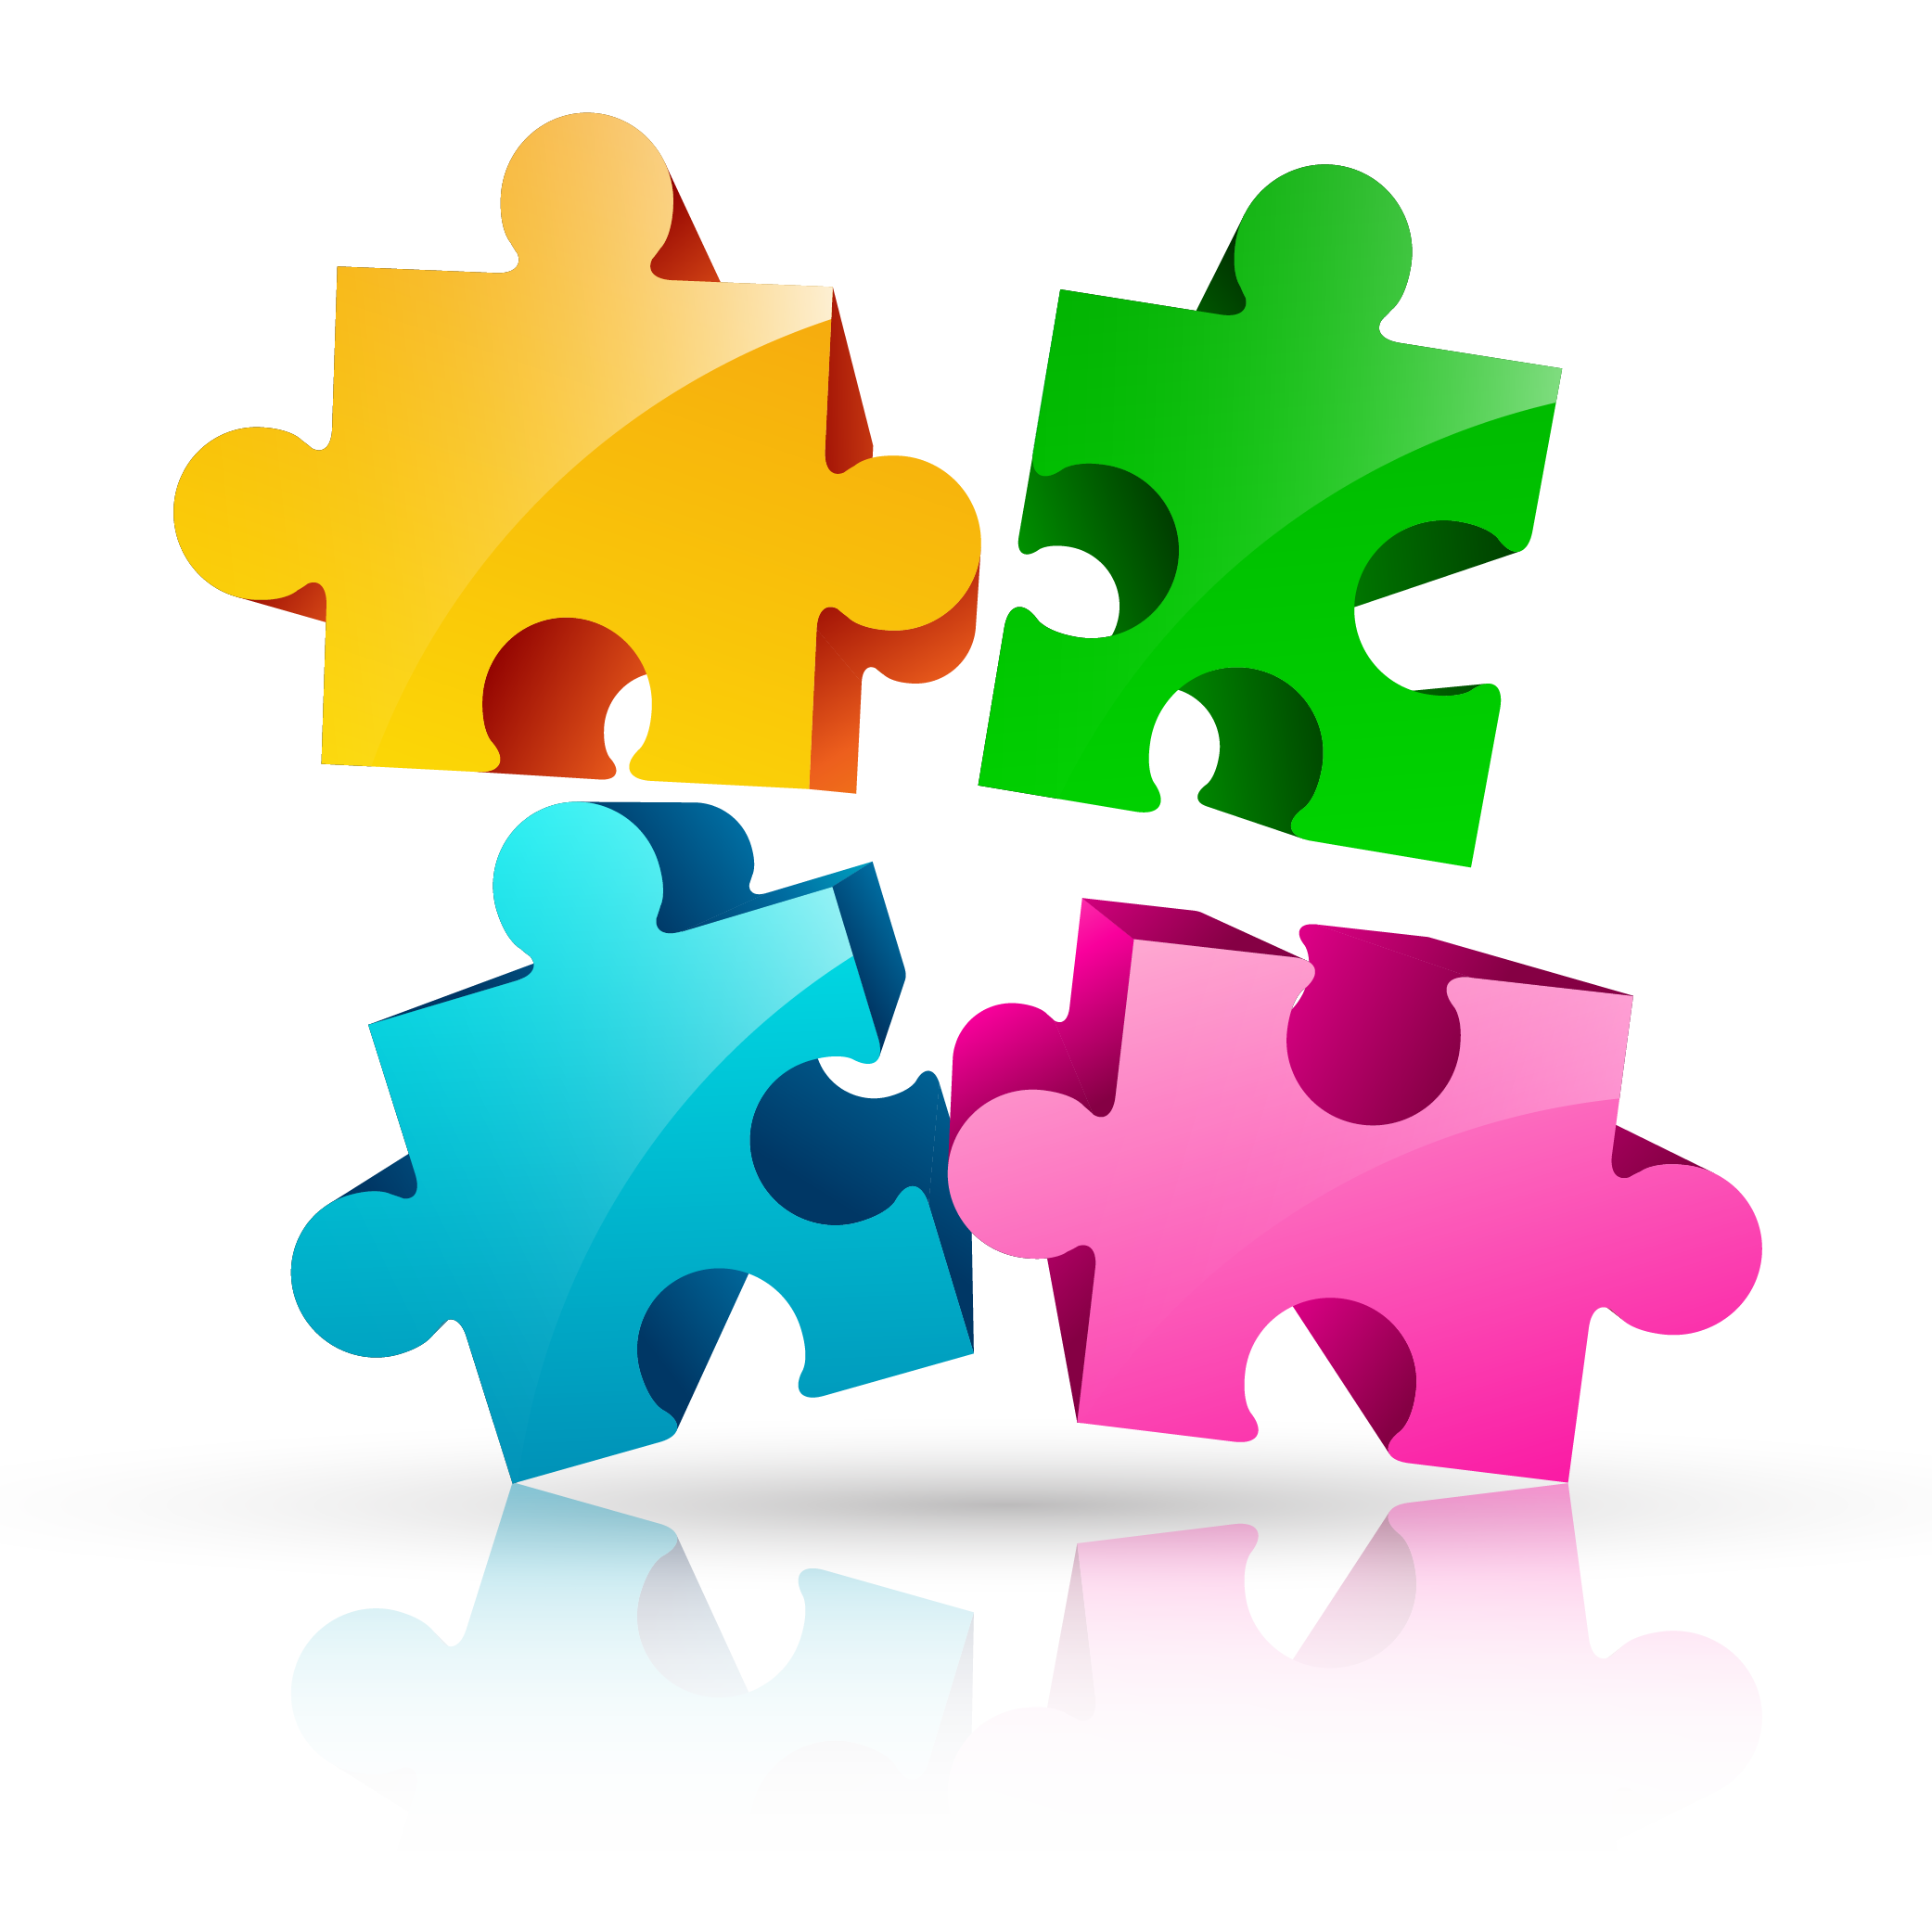 Puzzle Piece Vector at GetDrawings com | Free for personal use